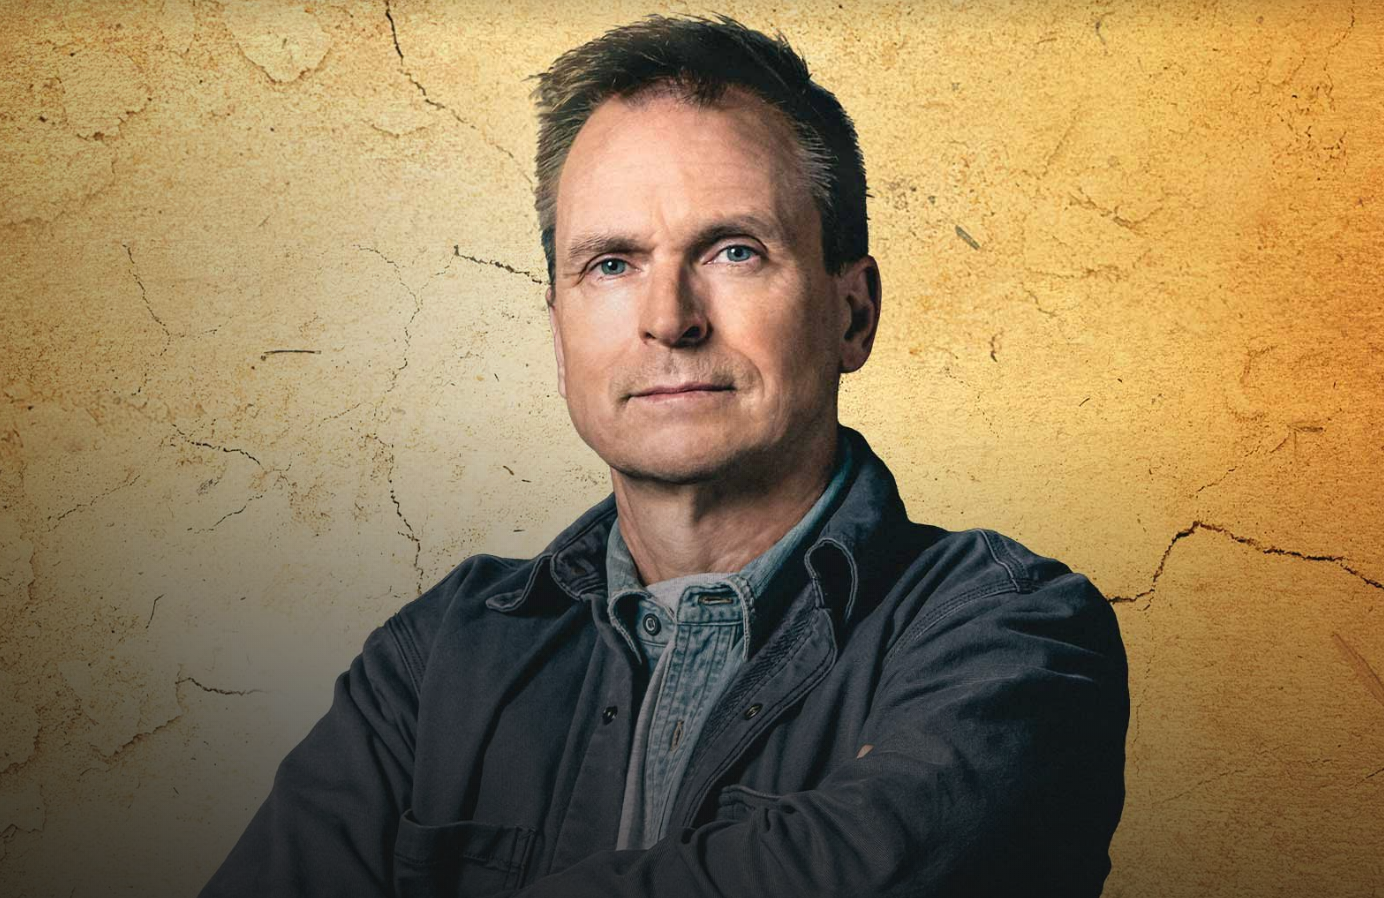 Phil Keoghan in a promotional photo for Tough as Nails. (CBS)